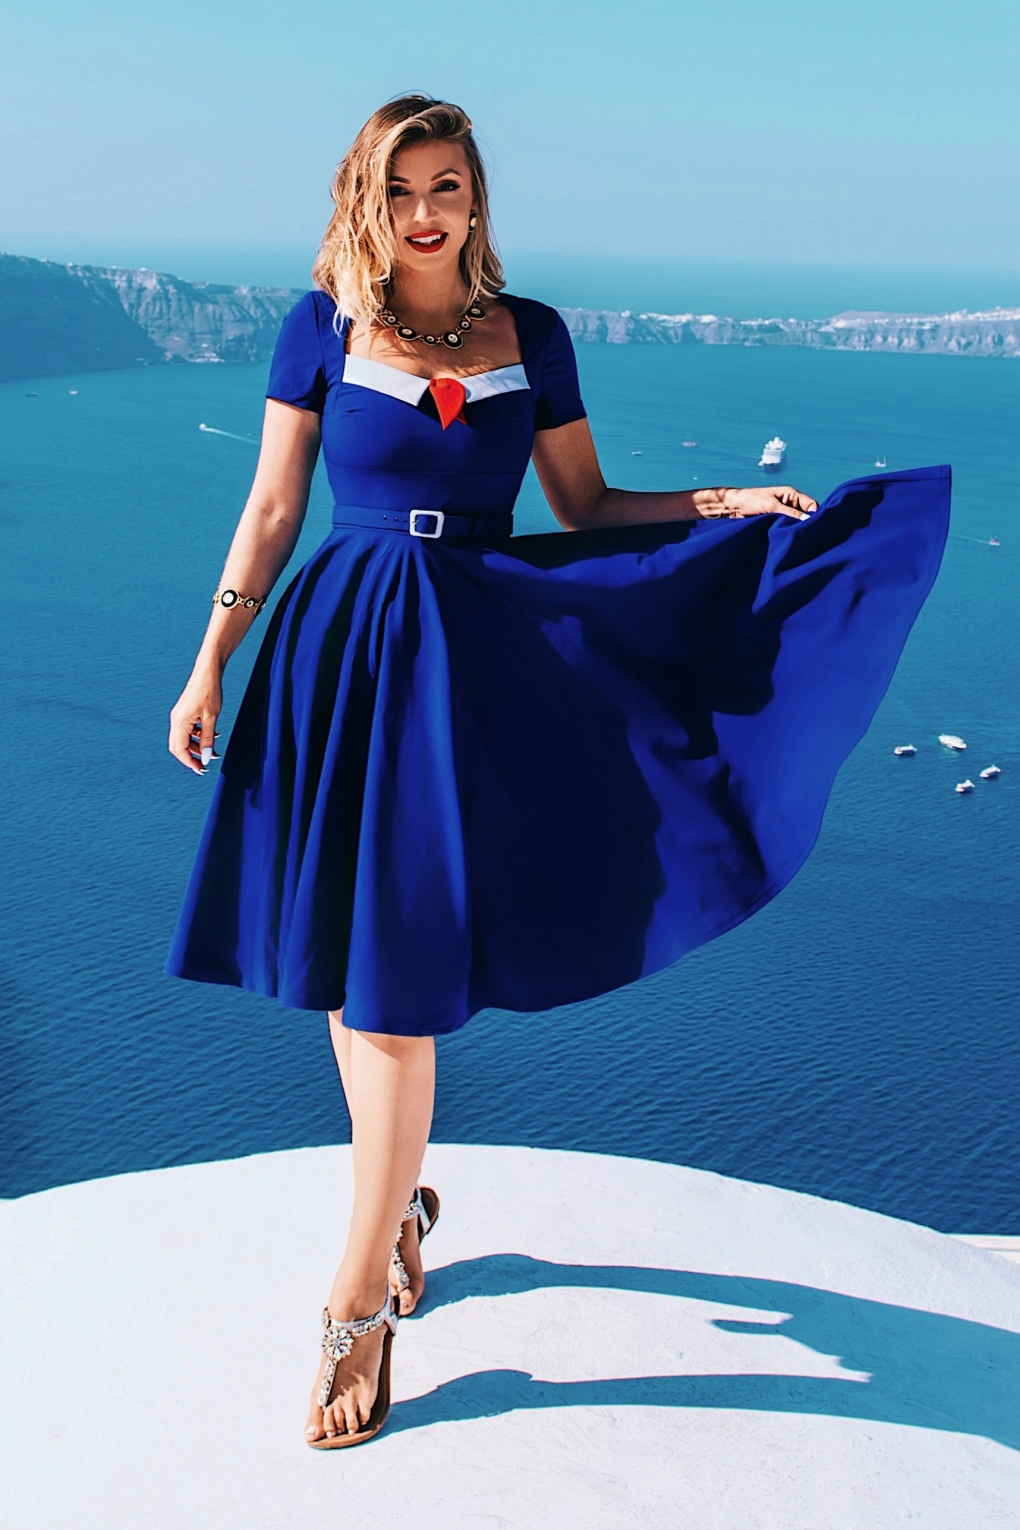 Vintage Cruise Outfits, Vacation Clothing 50s Ella Swing Dress in Royal Blue £72.37 AT vintagedancer.com